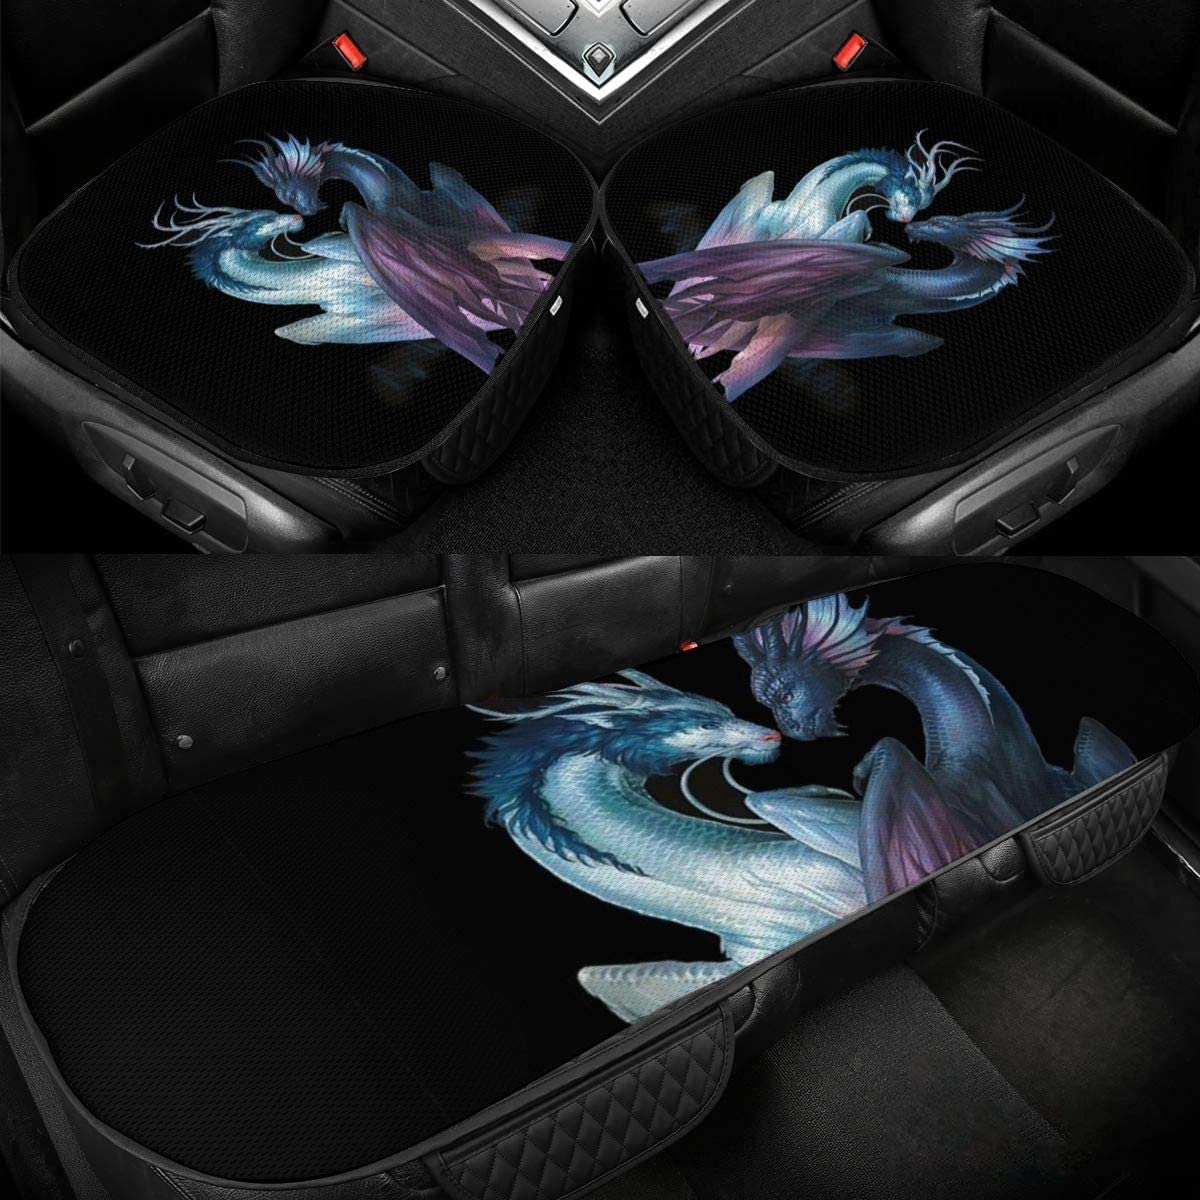 Kunming~ Ying Yang Dragons Max 59% OFF Grunge Car Seats Seat Onl Selling rankings Front Cover